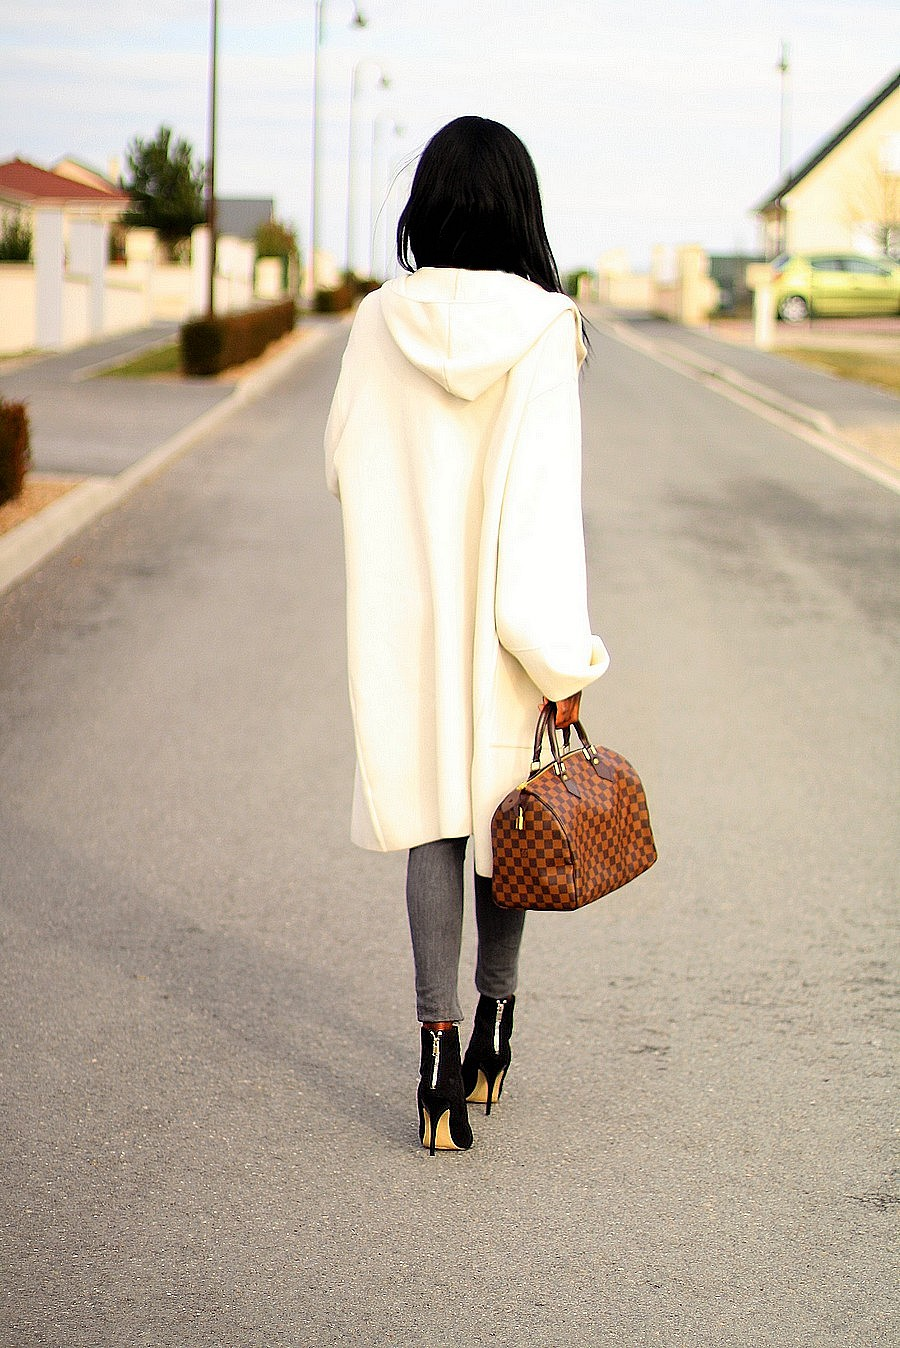 manteau-blanc-zara-manches-cloche-sac-louis-vuitton-speedy